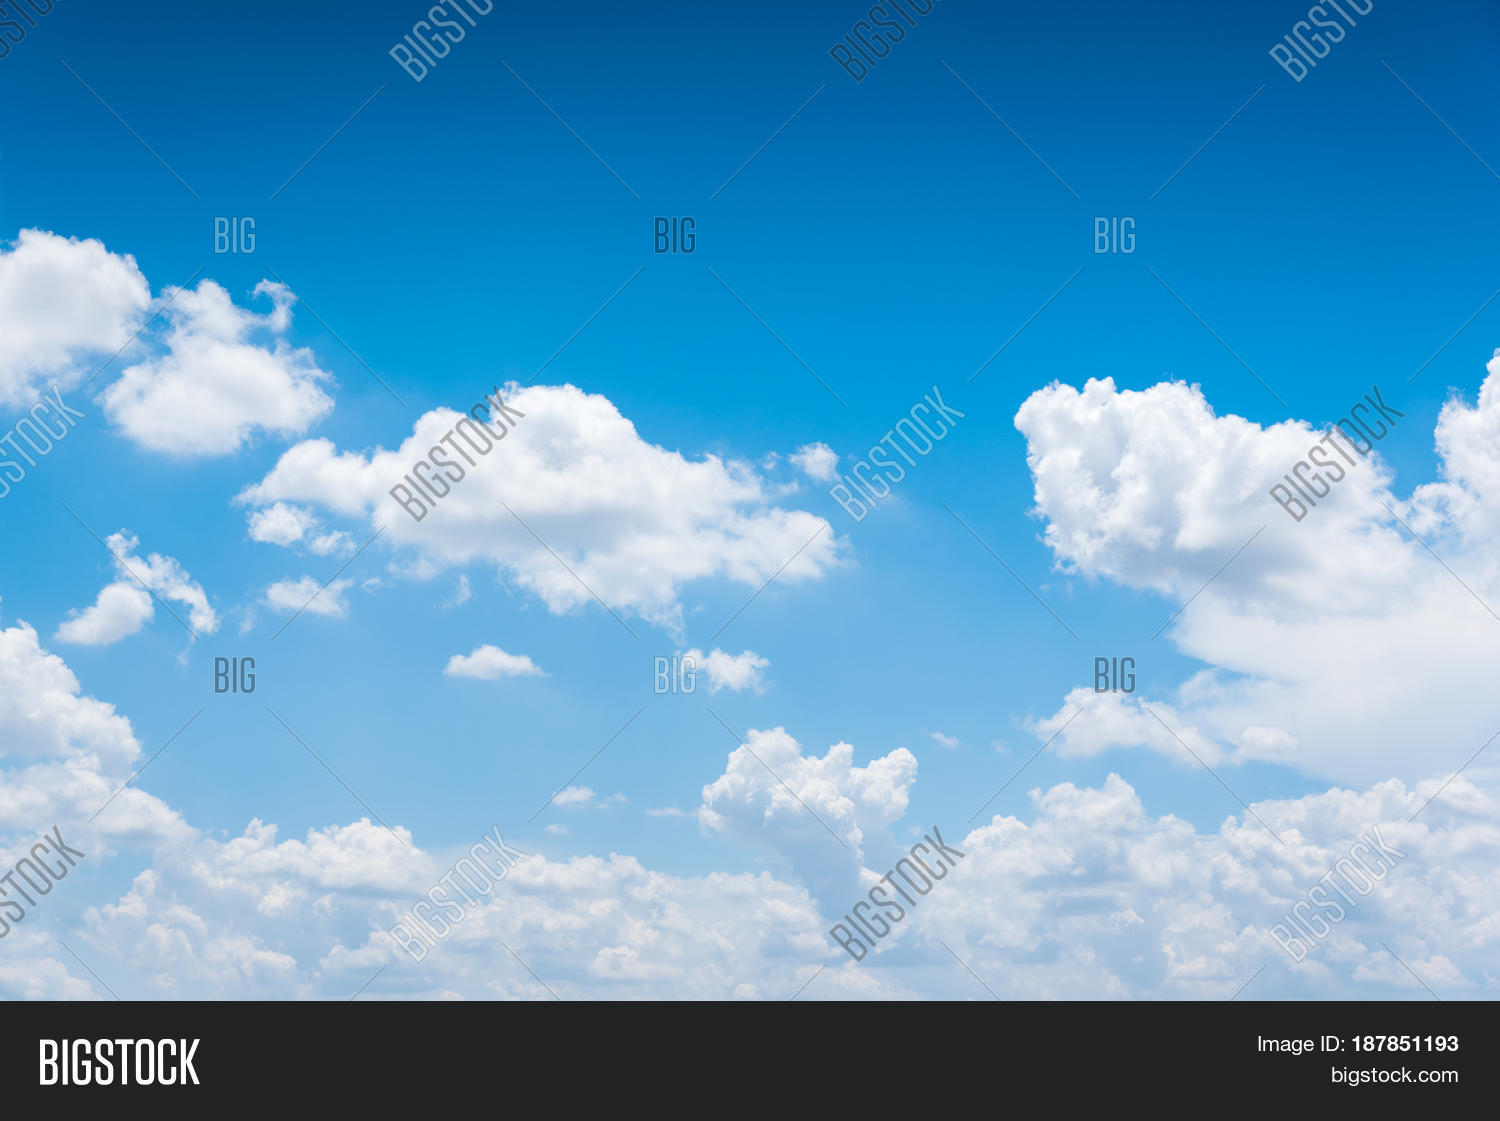 vast blue sky clouds image photo free trial bigstock